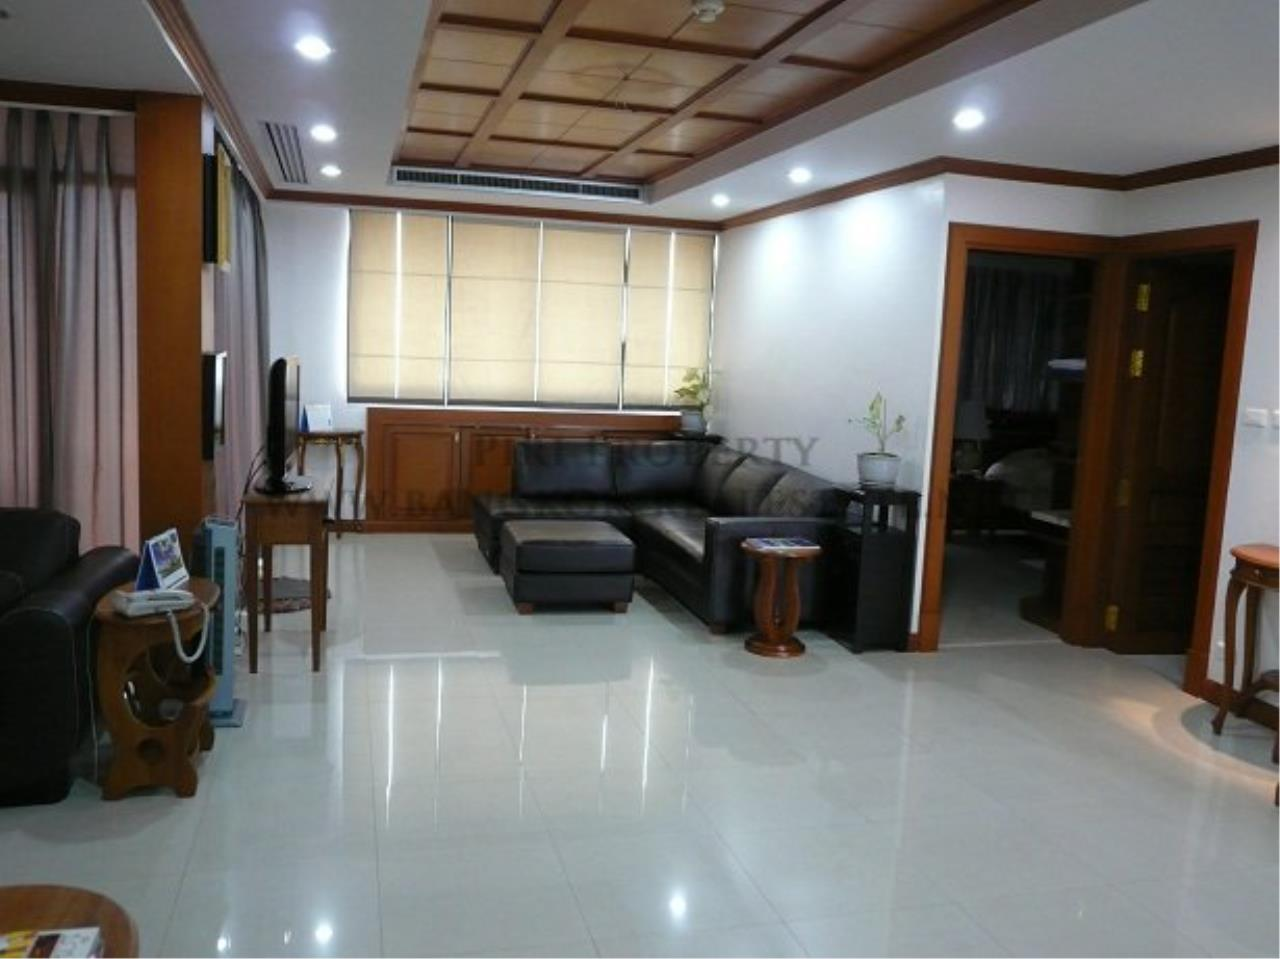 Piri Property Agency's Duplex Condominium in Asoke for Sale - 3 Bedroom 2